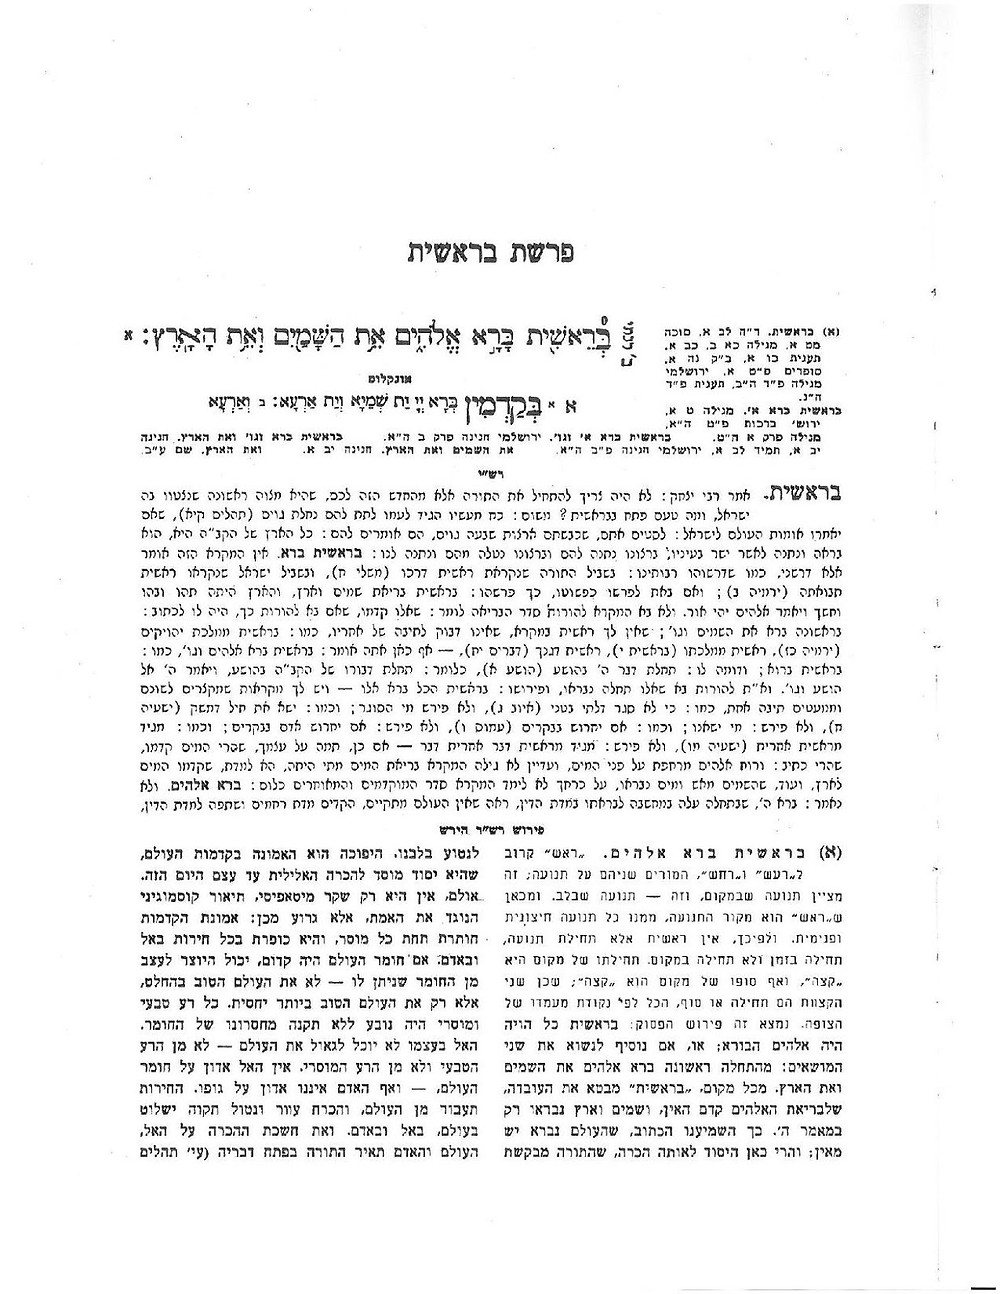 First page of the Hebrew Bible, with commentaries